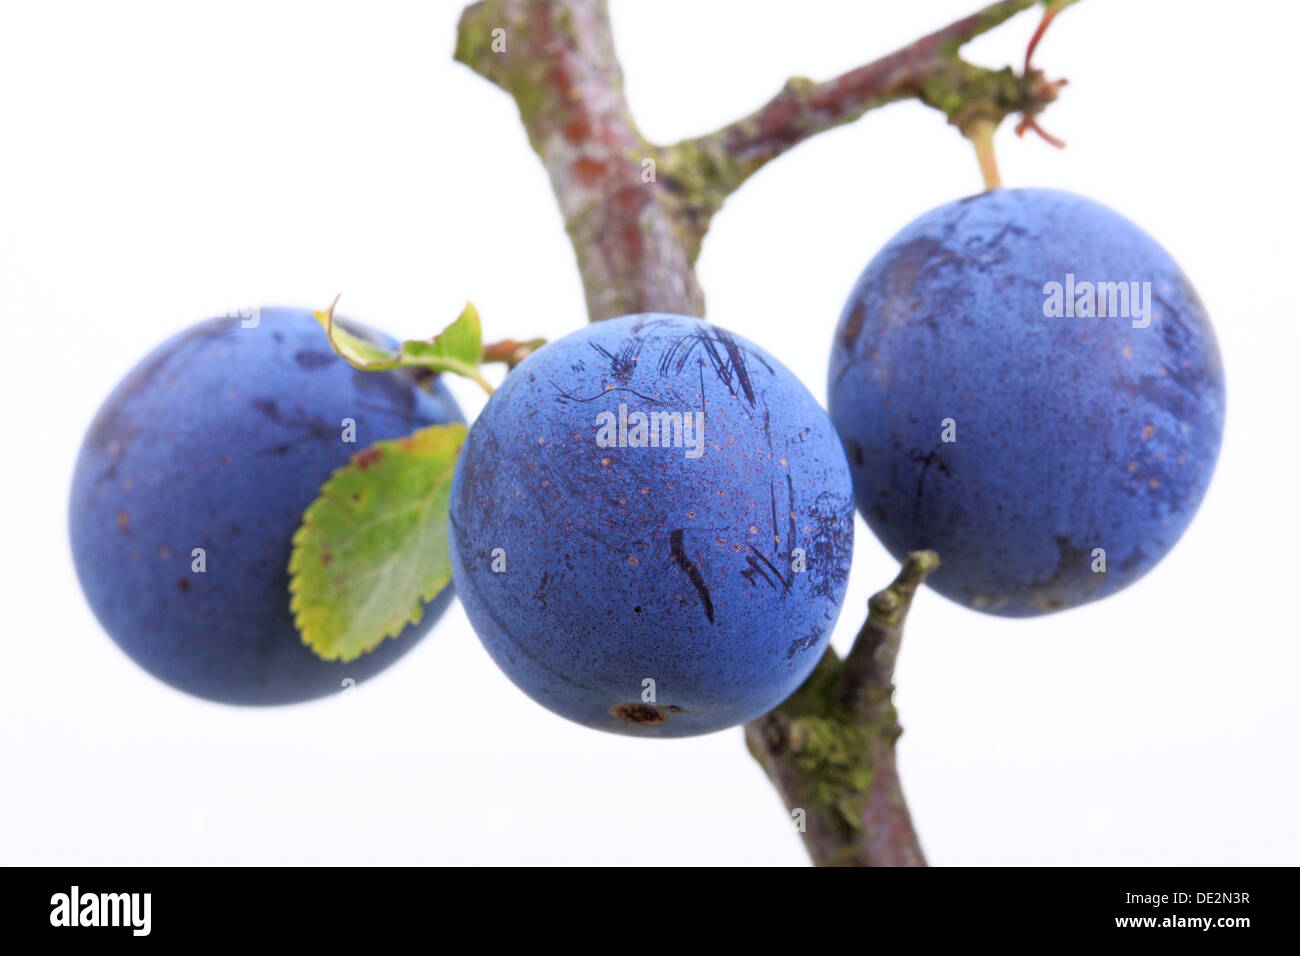 Blackthorn, sloe (Prunus spinosa), berries - Stock Image